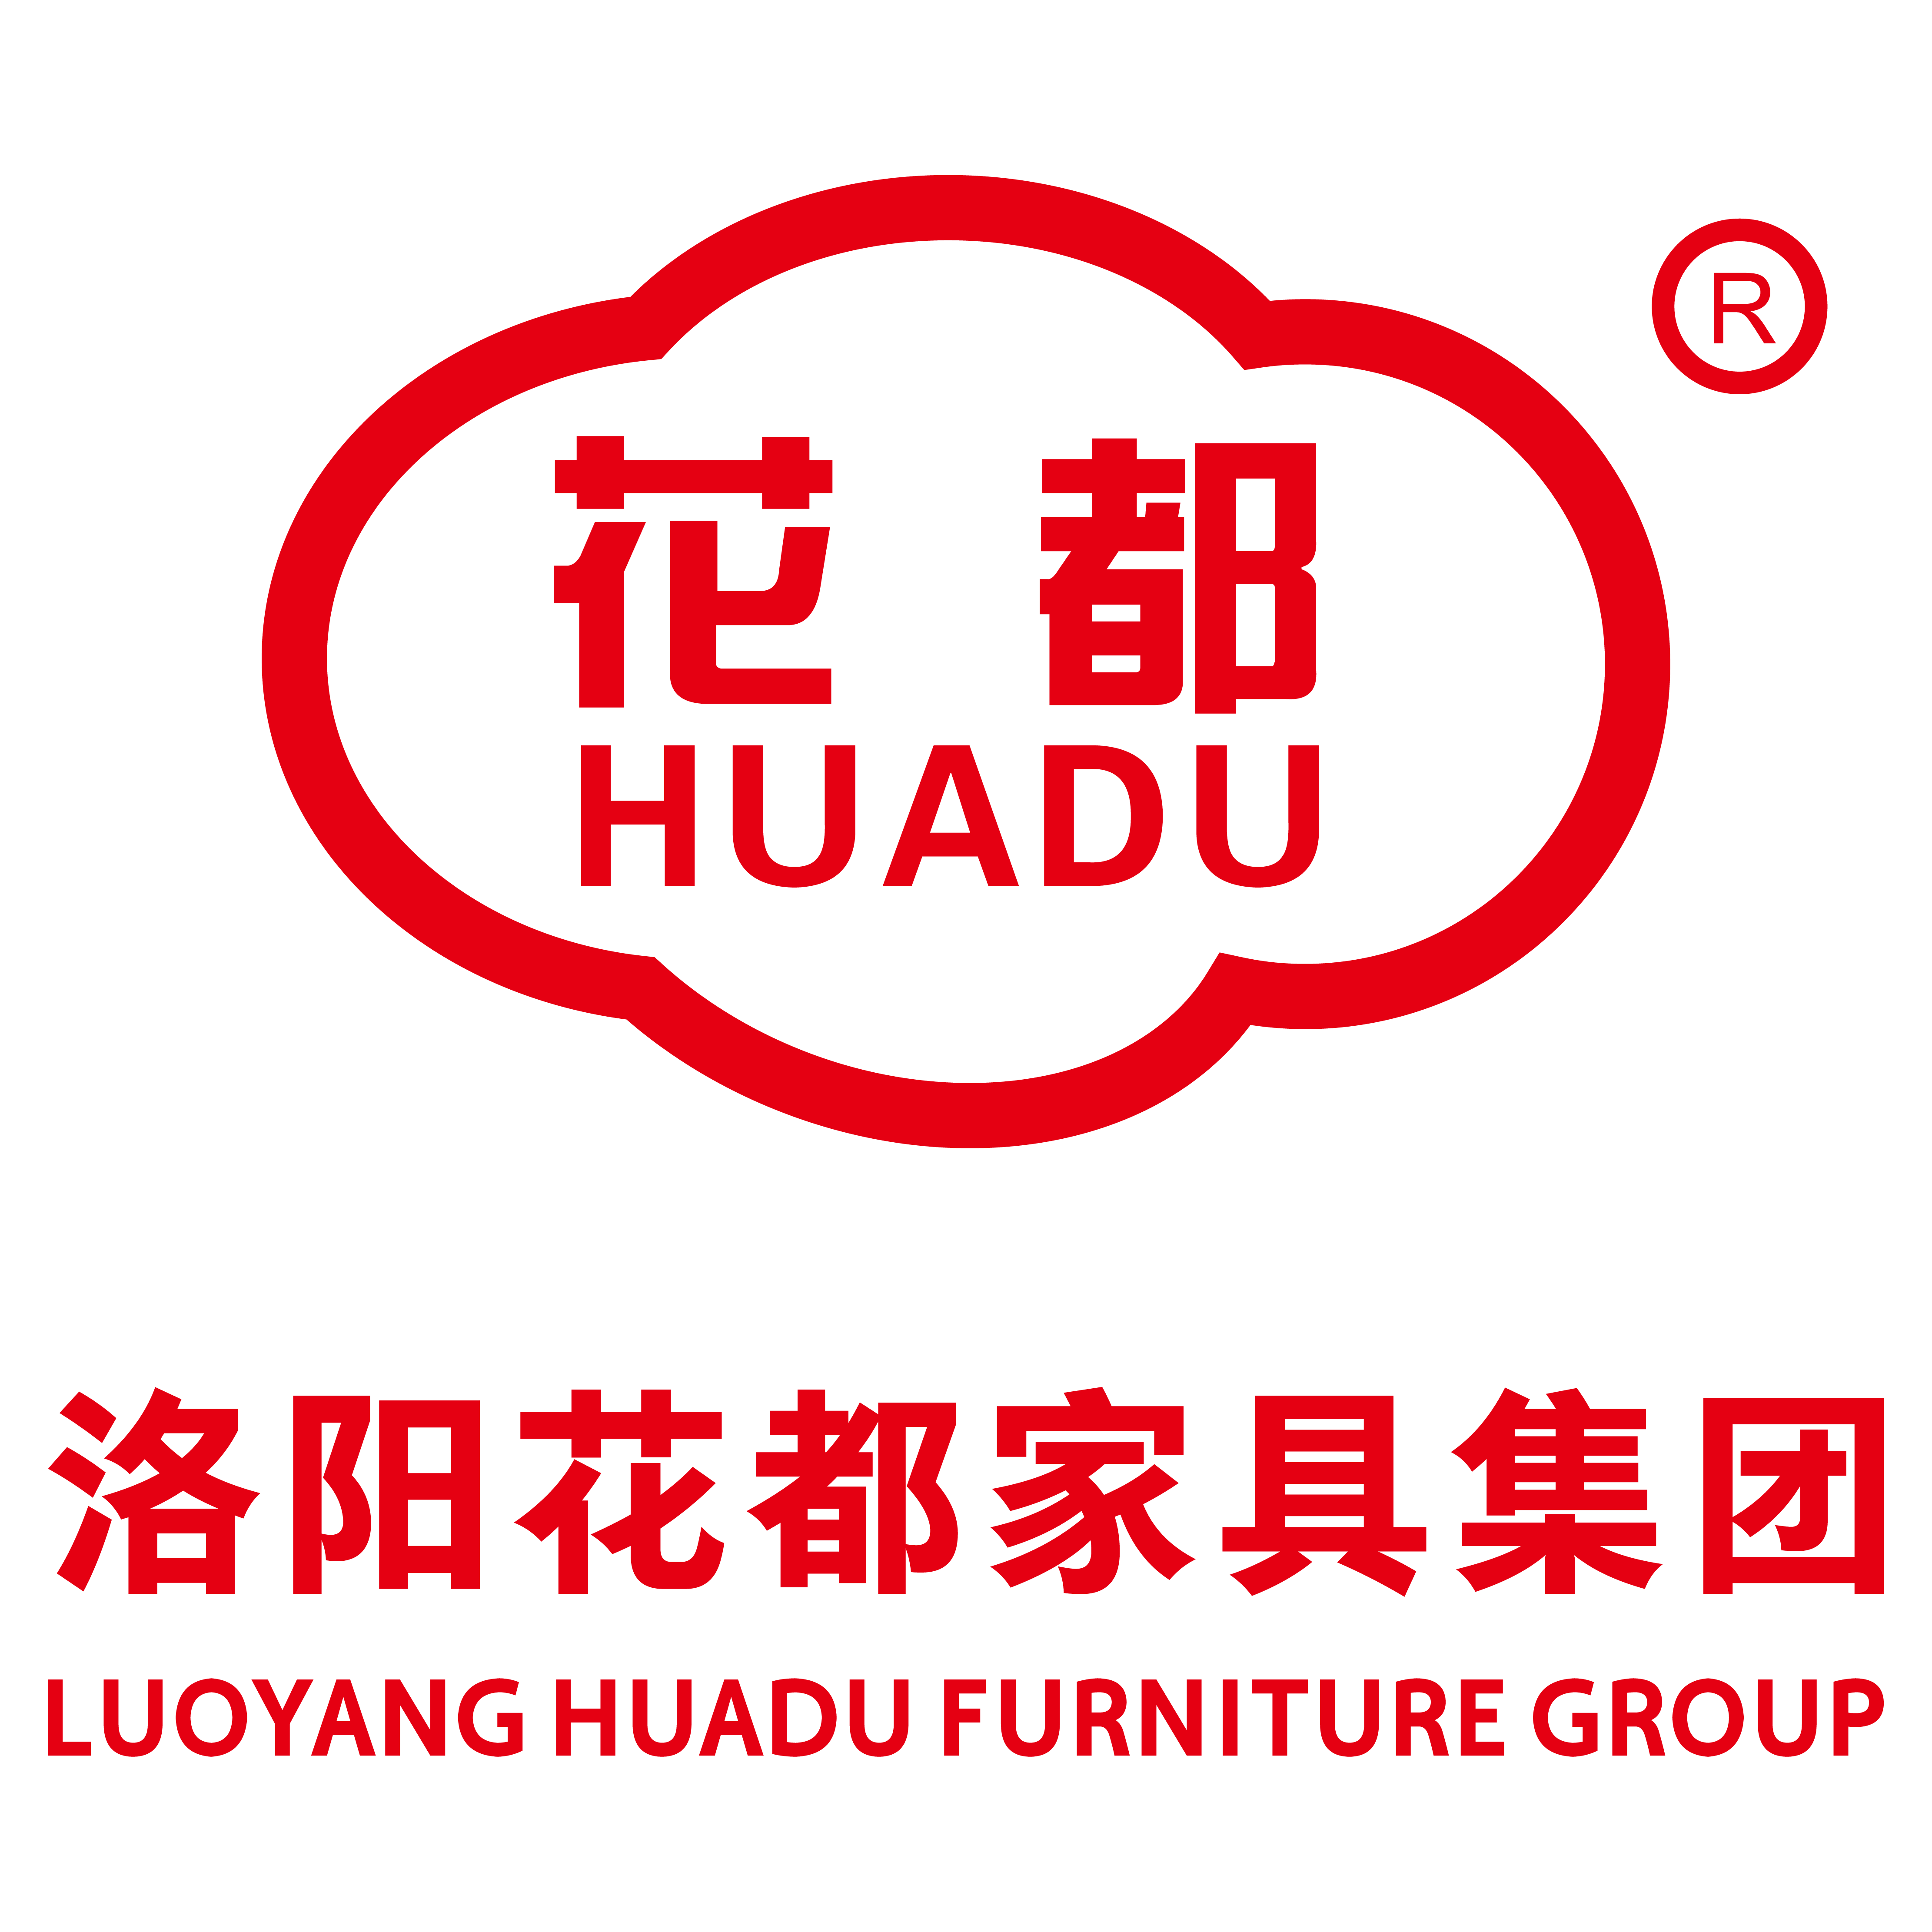 LUOYANG HUADU IMP-EXPORT CO ., LTD